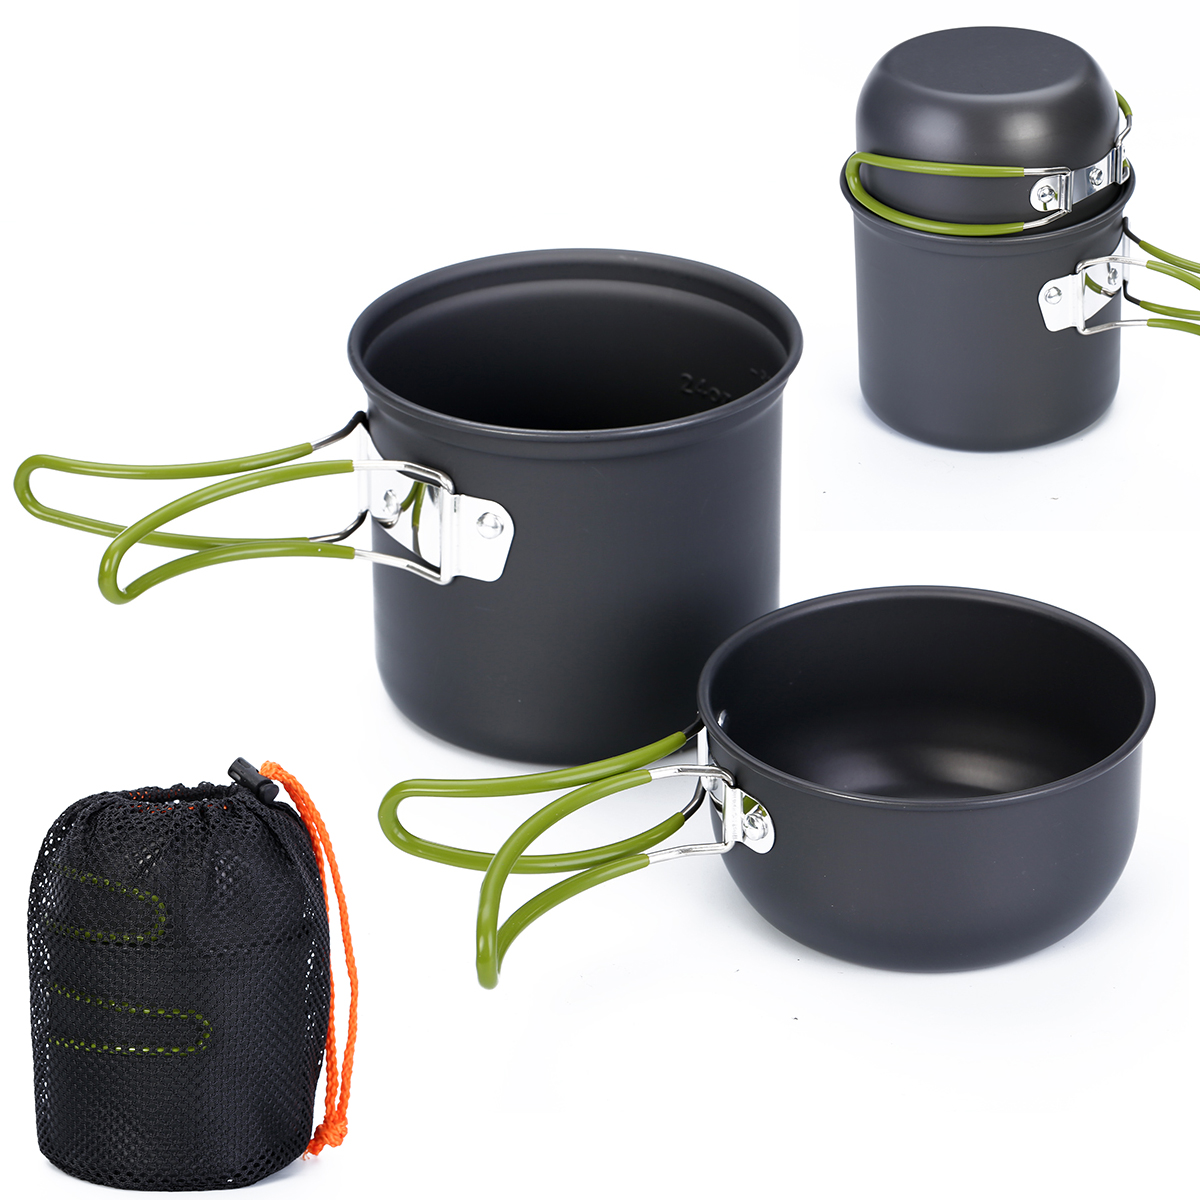 New Non Stick Aluminum Camping Cookware Hiking Outdoor Camping Backpacking Cooking Picnic Portable Cookware Set Bowl Pot in Outdoor Tablewares from Sports Entertainment